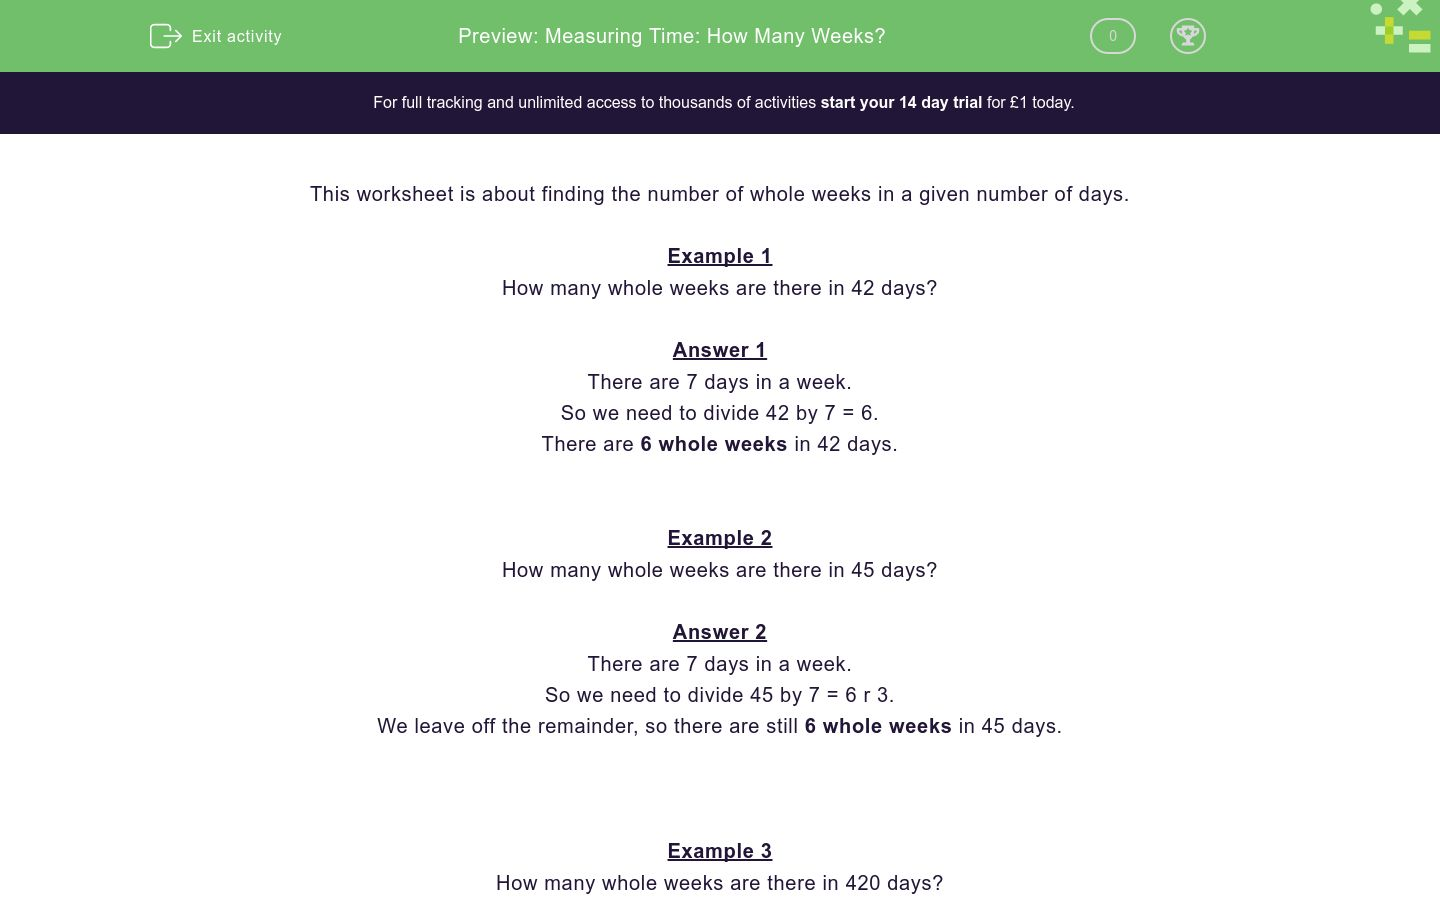 Measuring Time: How Many Weeks? Worksheet - EdPlace